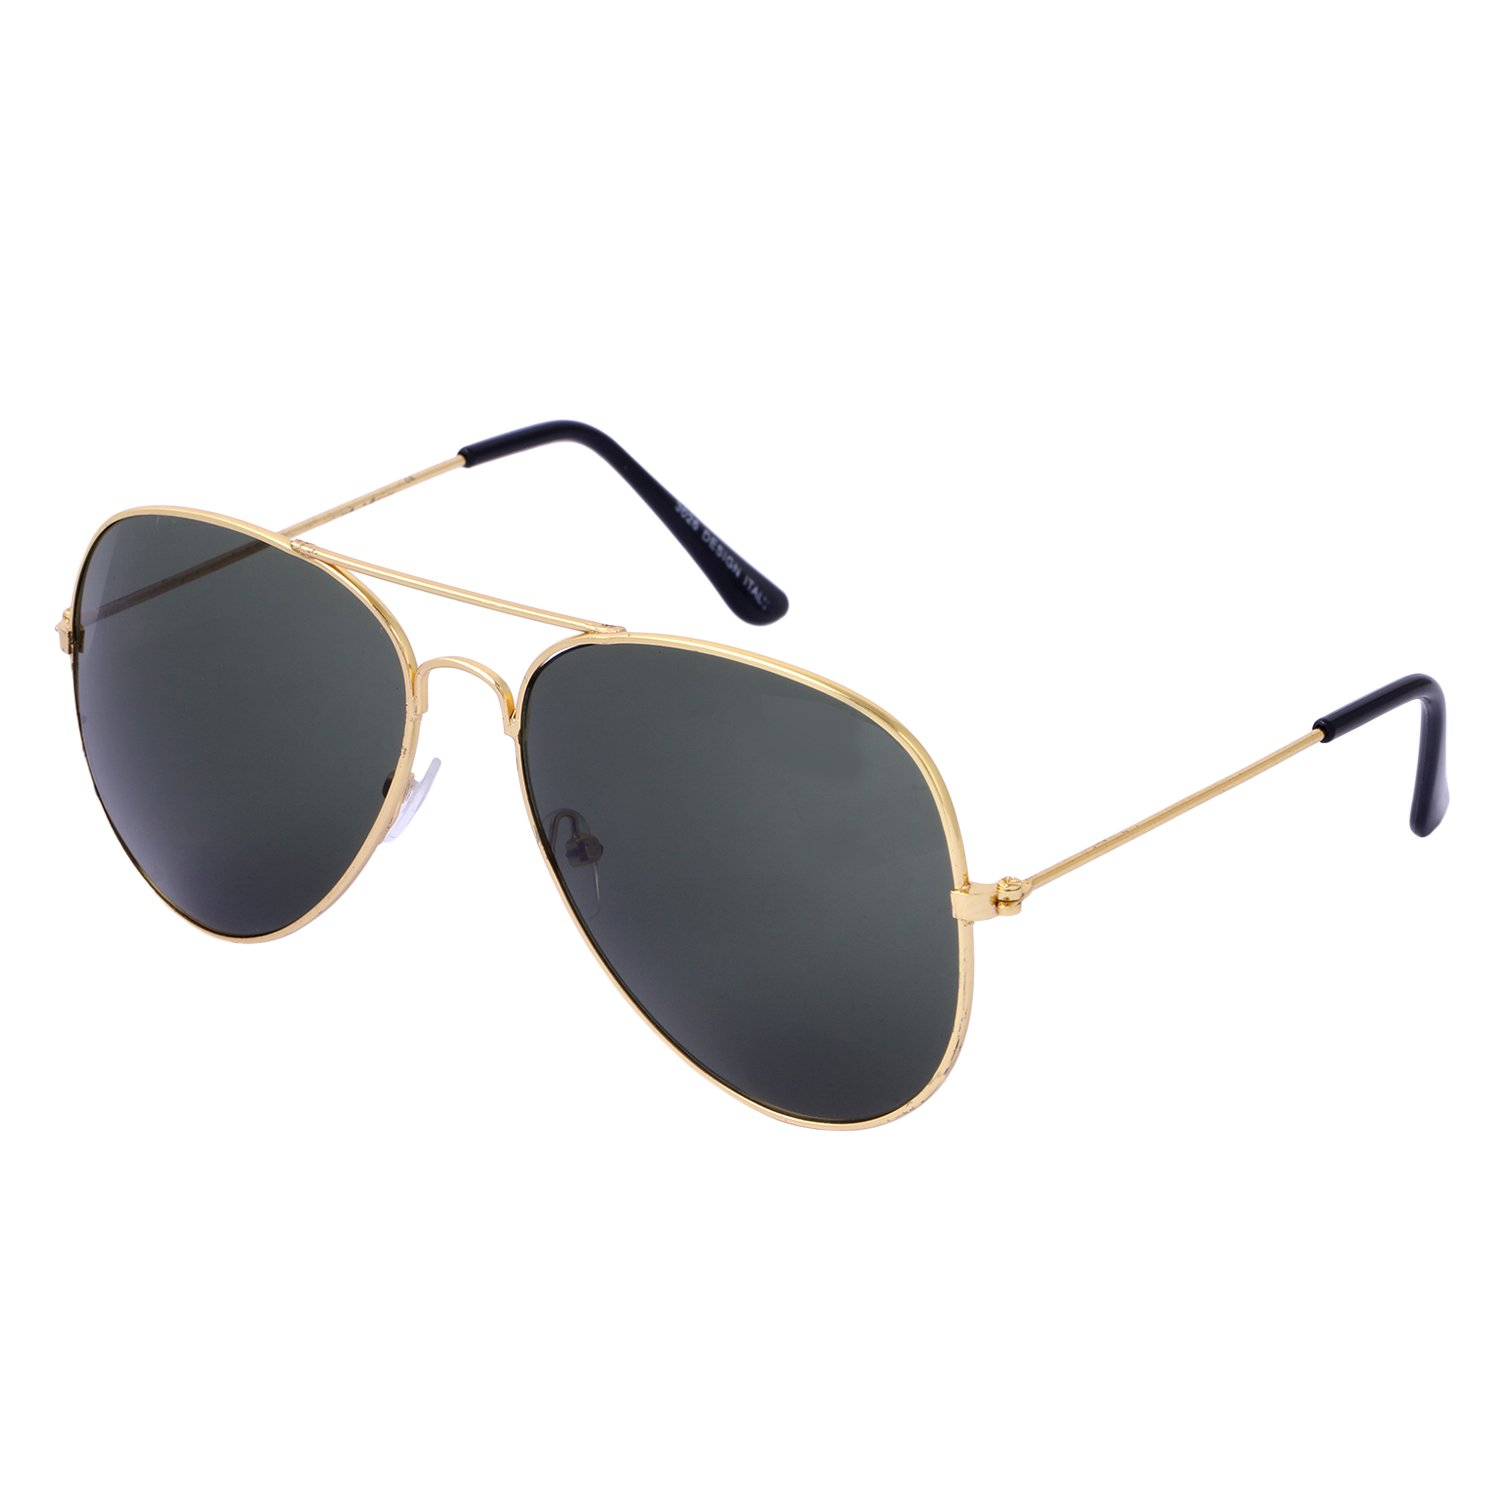 781bd7c5388 Vars Unisex Navy Color Lens   Golden Metal Frame Aviator Sunglasses   Amazon.in  Clothing   Accessories